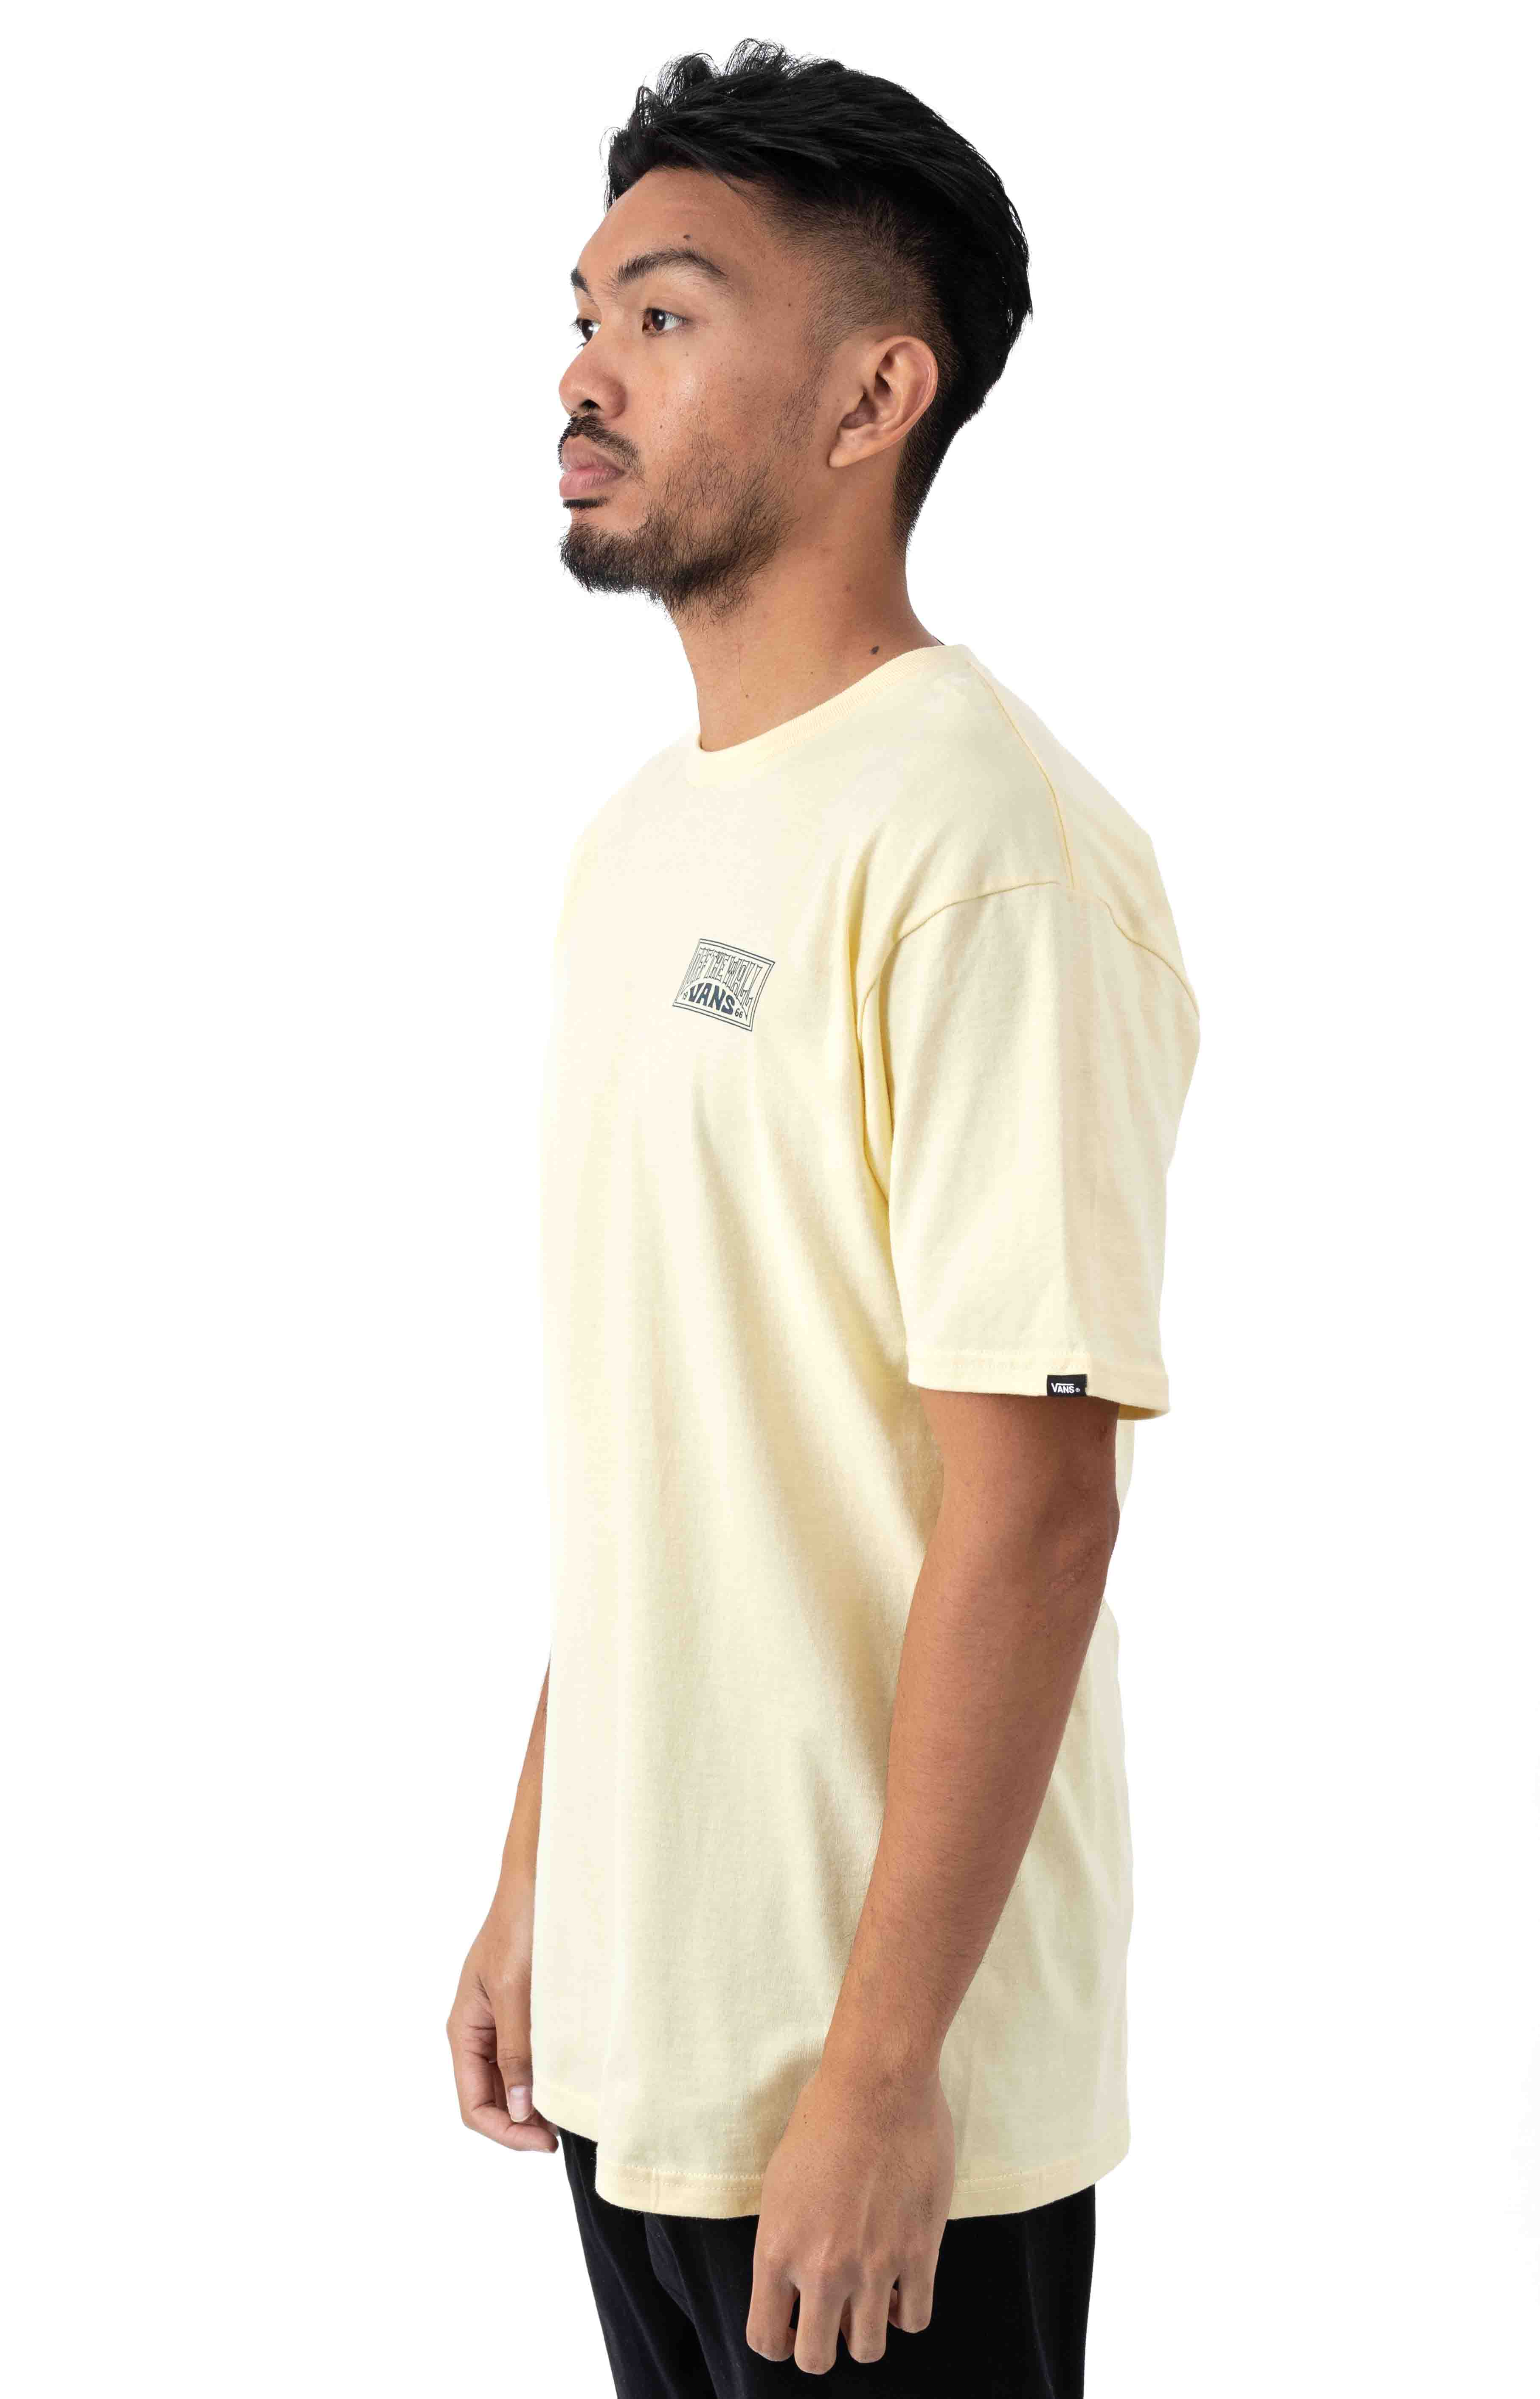 Rubber Co. T-Shirt - Double Cream  3